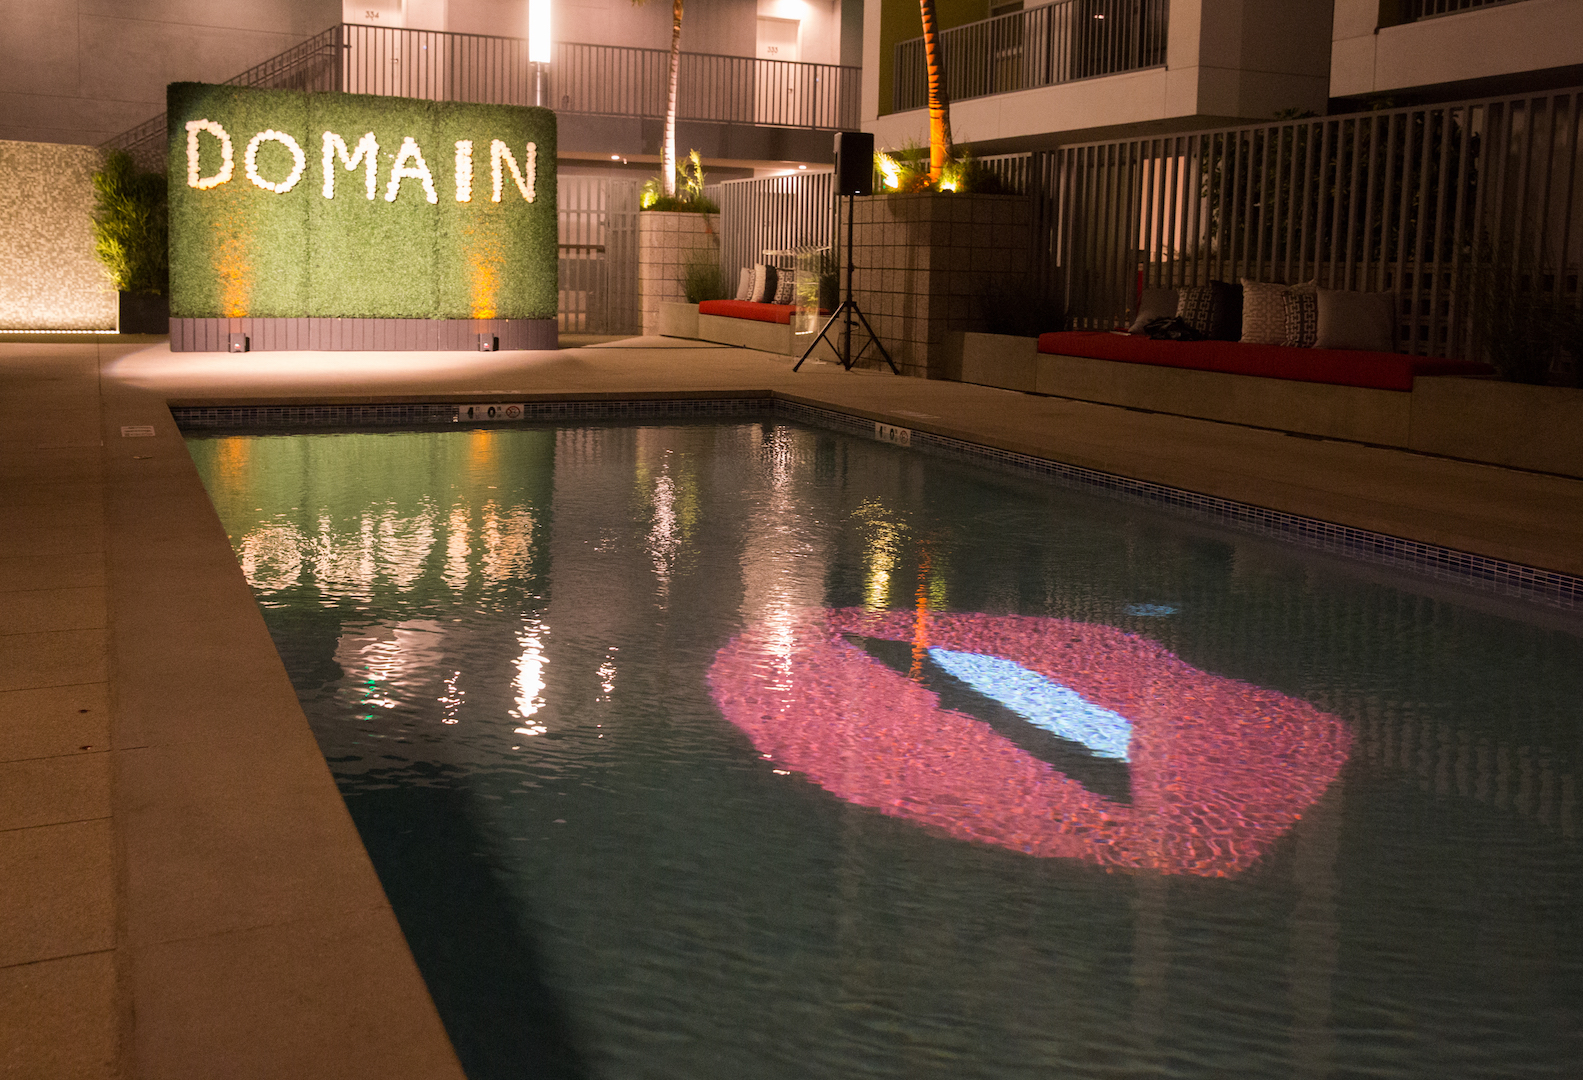 DOMAIN LAOPENING CEREMONY - WEST HOLLYWOOD, CA